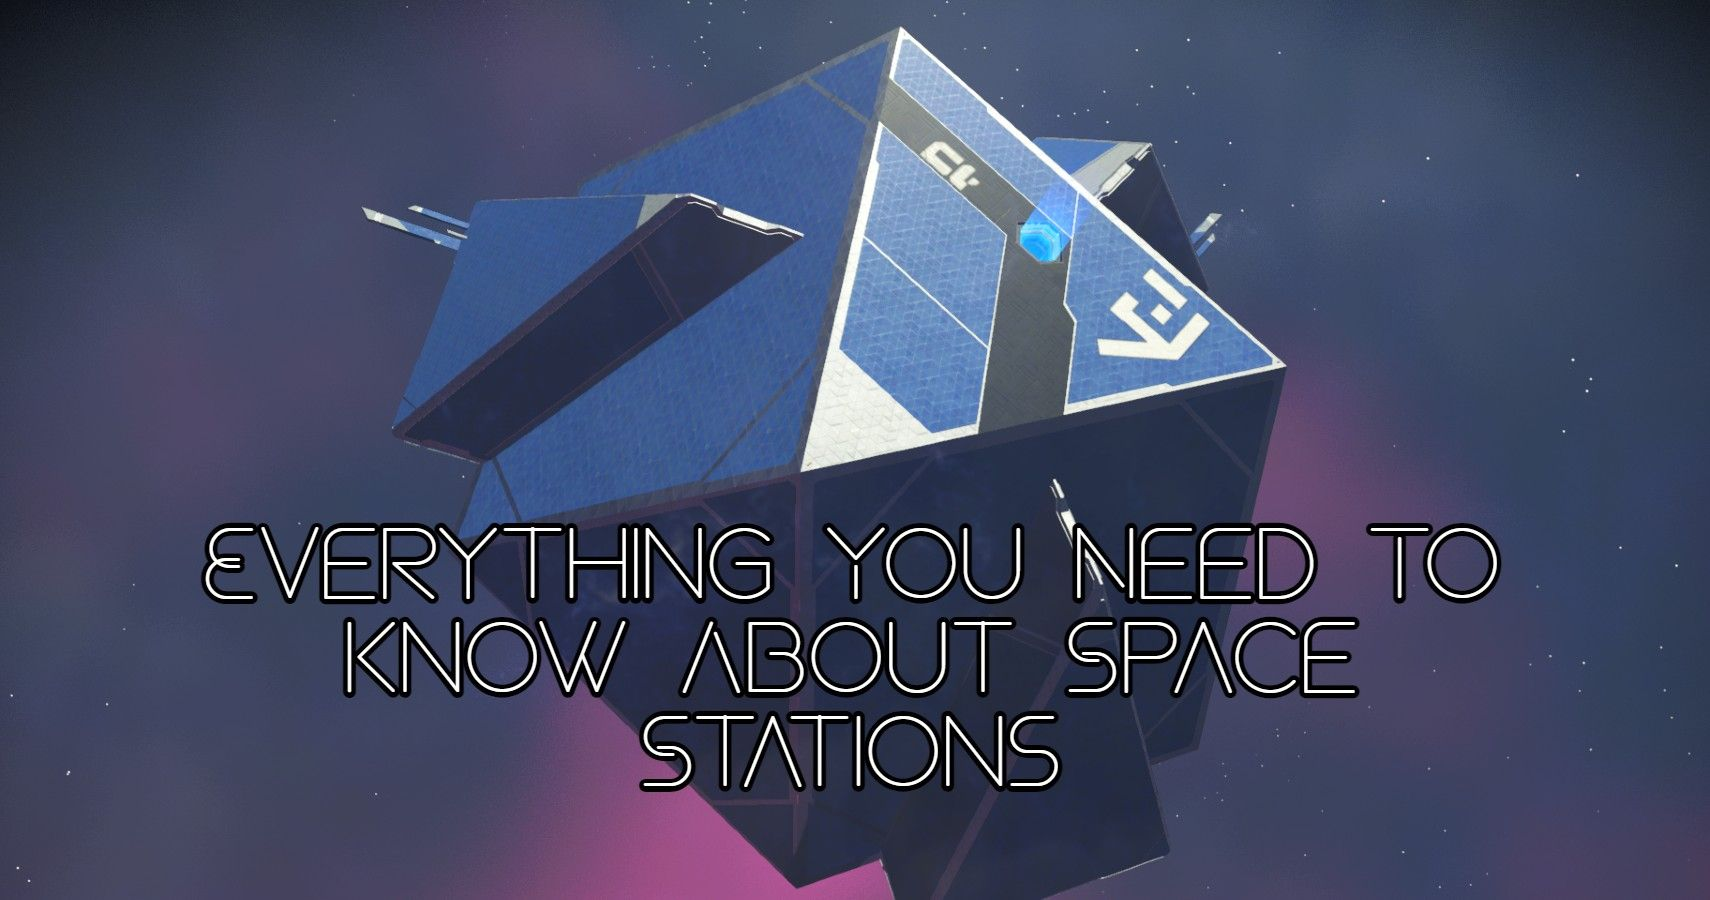 No Man's Sky: Everything You Need To Know About Space Stations